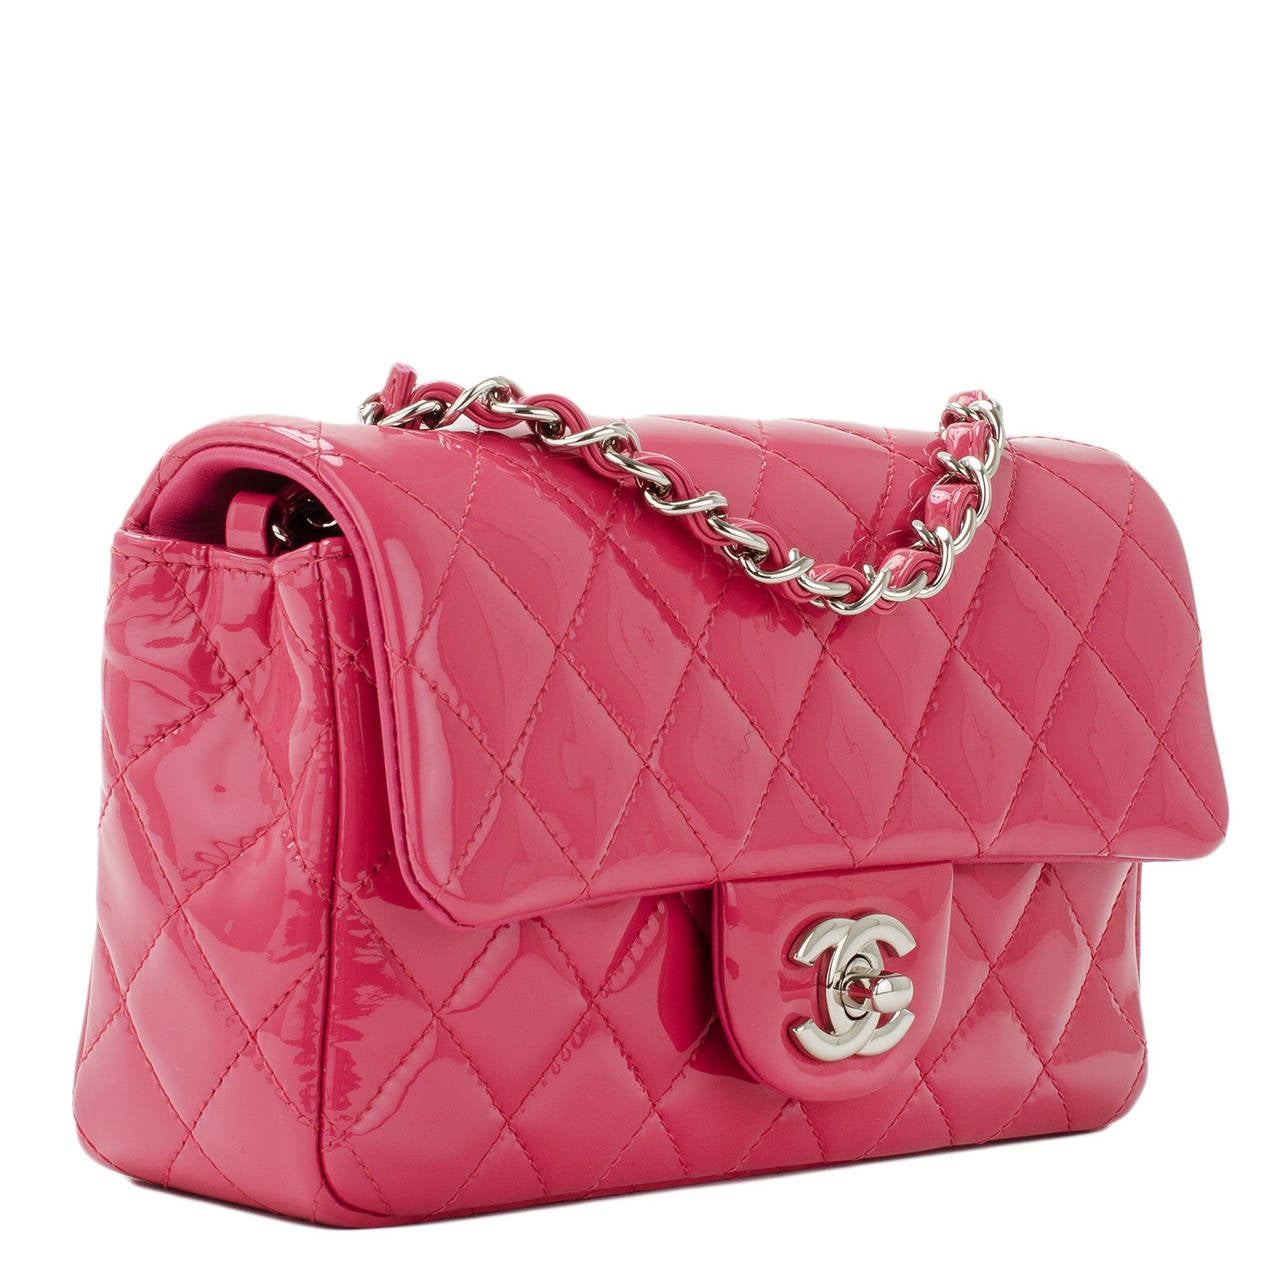 b3f6d4a1e307 Chanel Pink Flap Bag Price | Stanford Center for Opportunity Policy ...